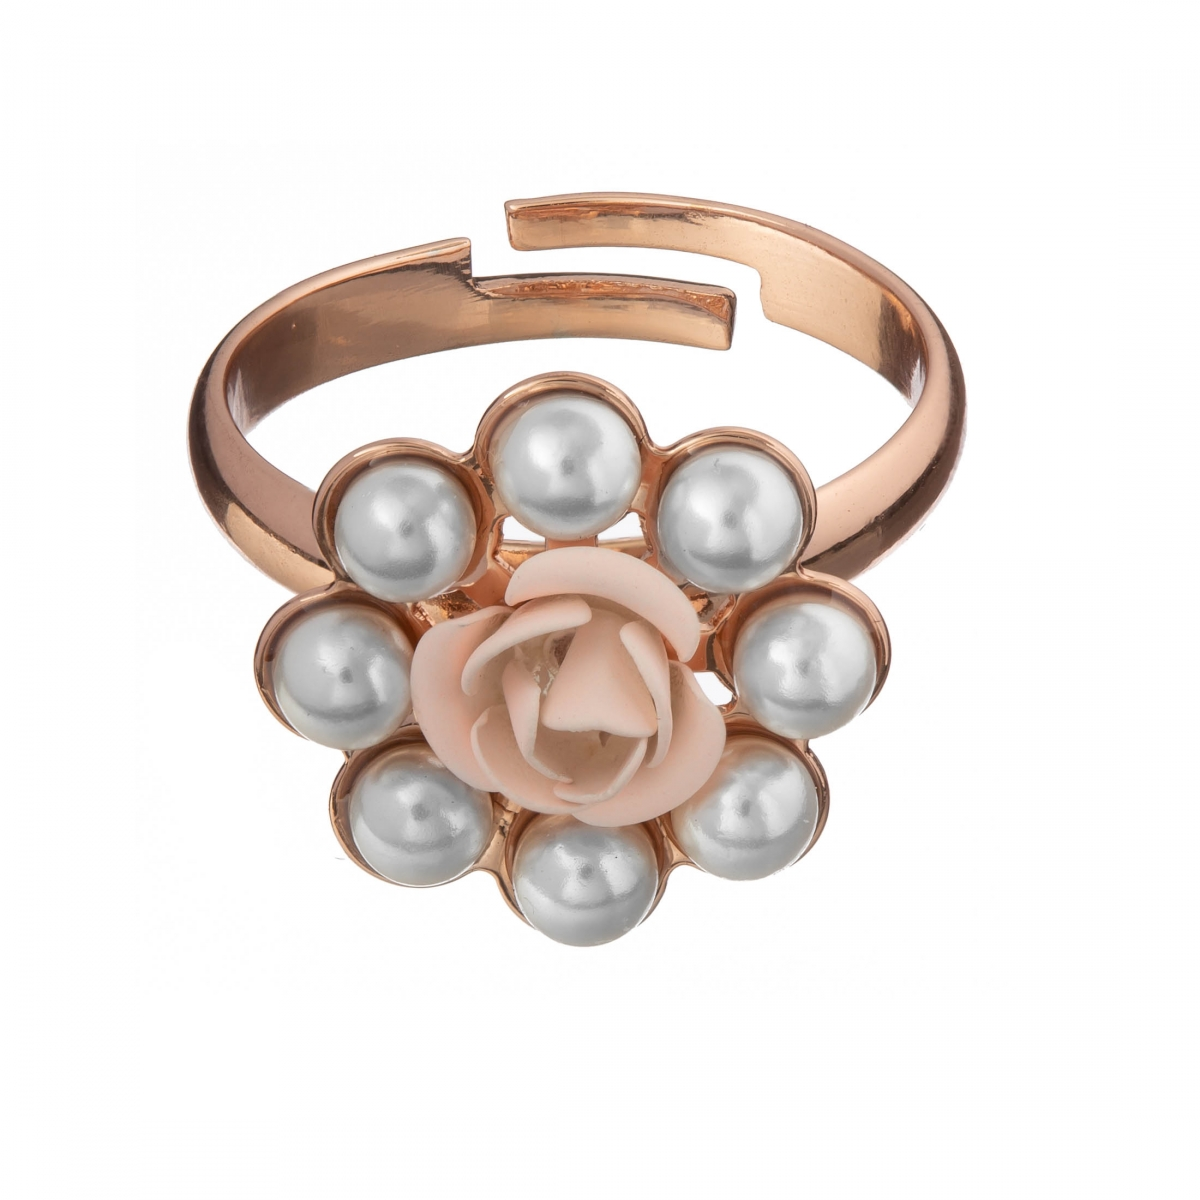 Prsteň Fine Romantic Pink Rose with White Pearls Rose Gold